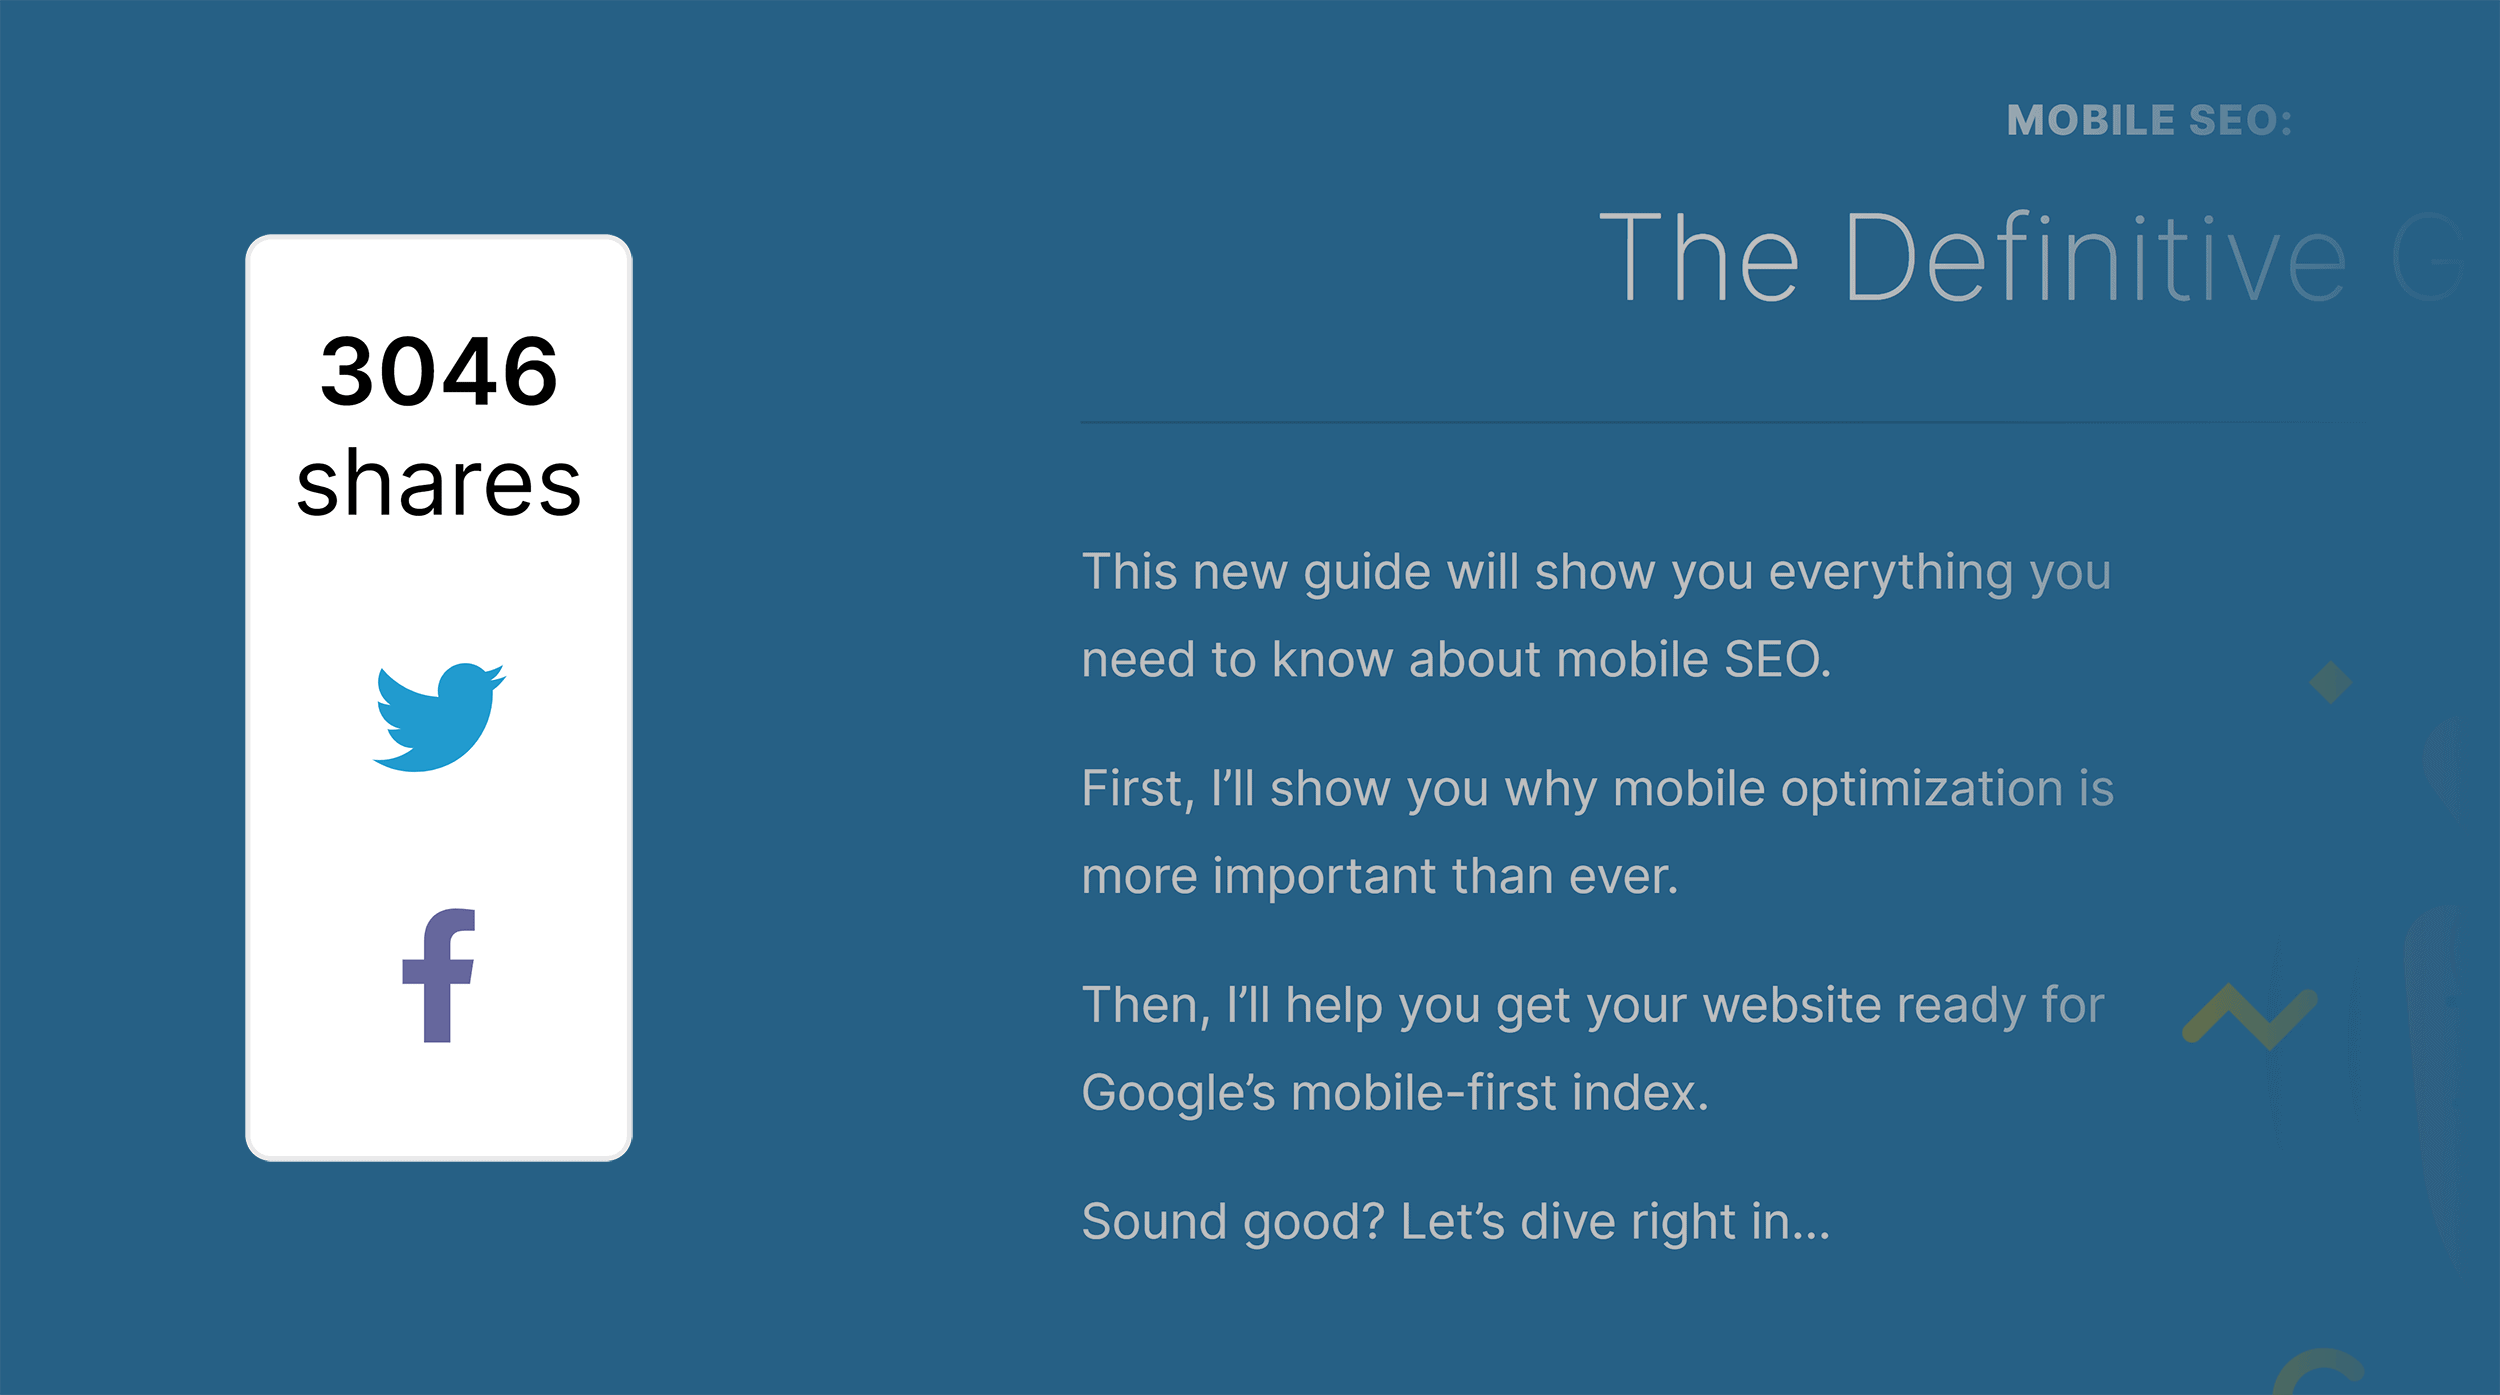 Mobile SEO guide – Shares